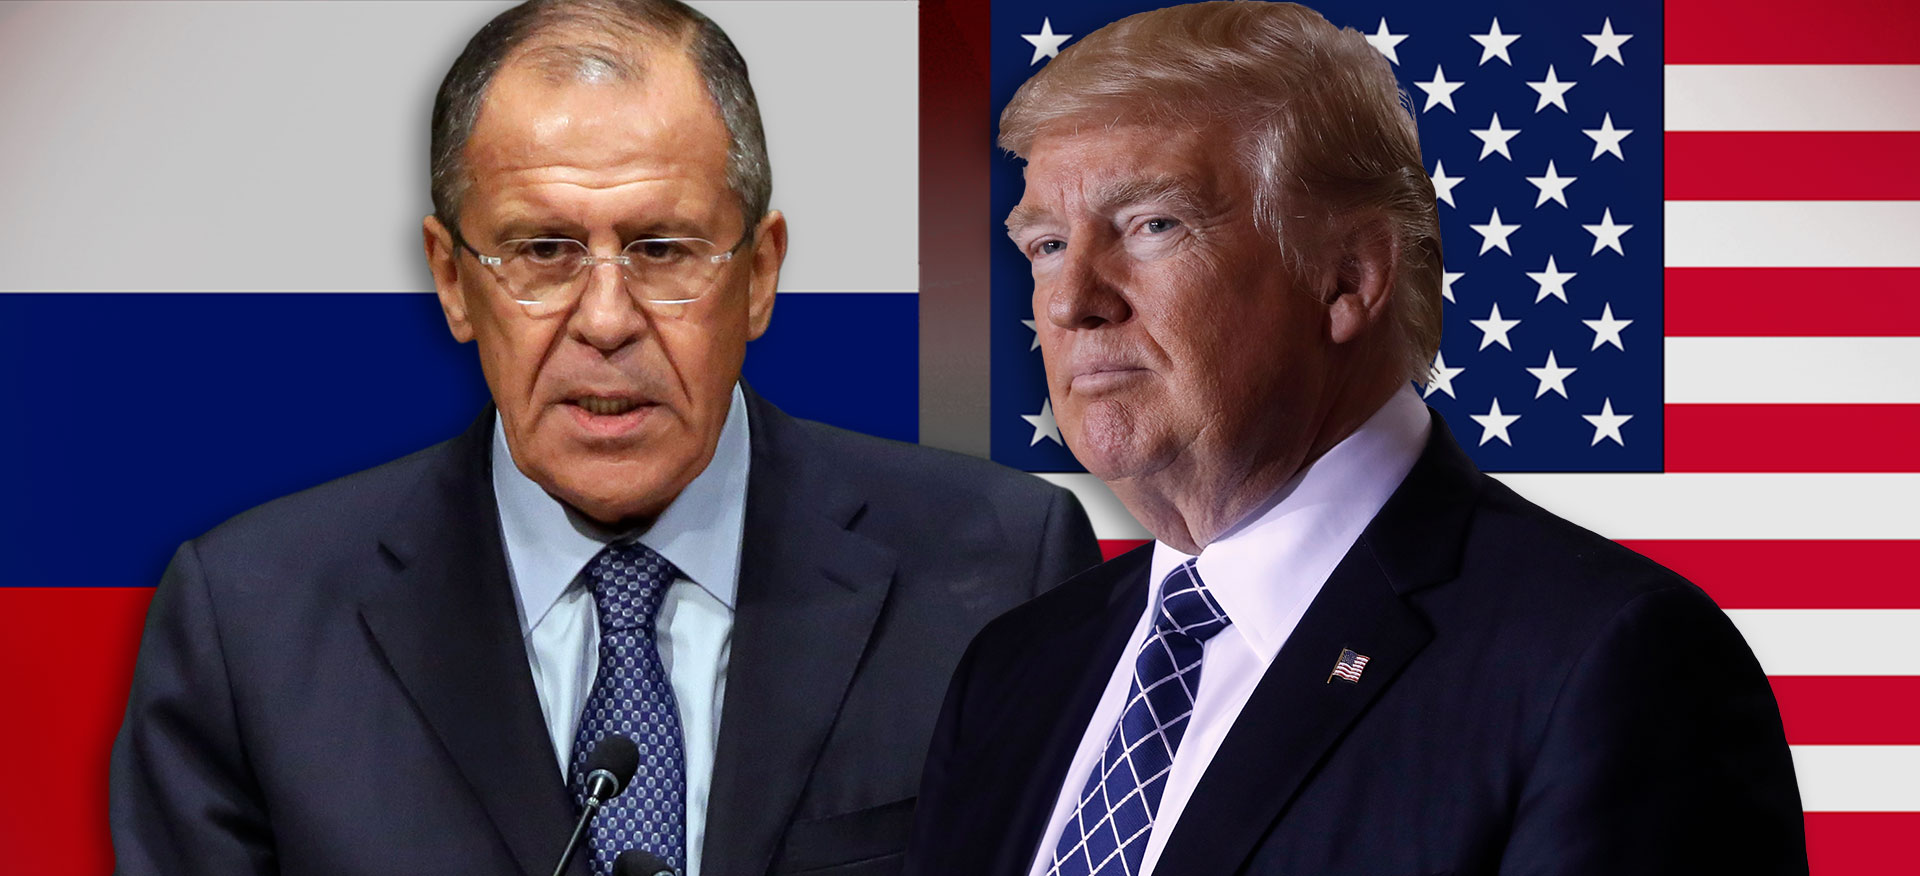 100 Trump To Meet With Russia A Russian Newspaper